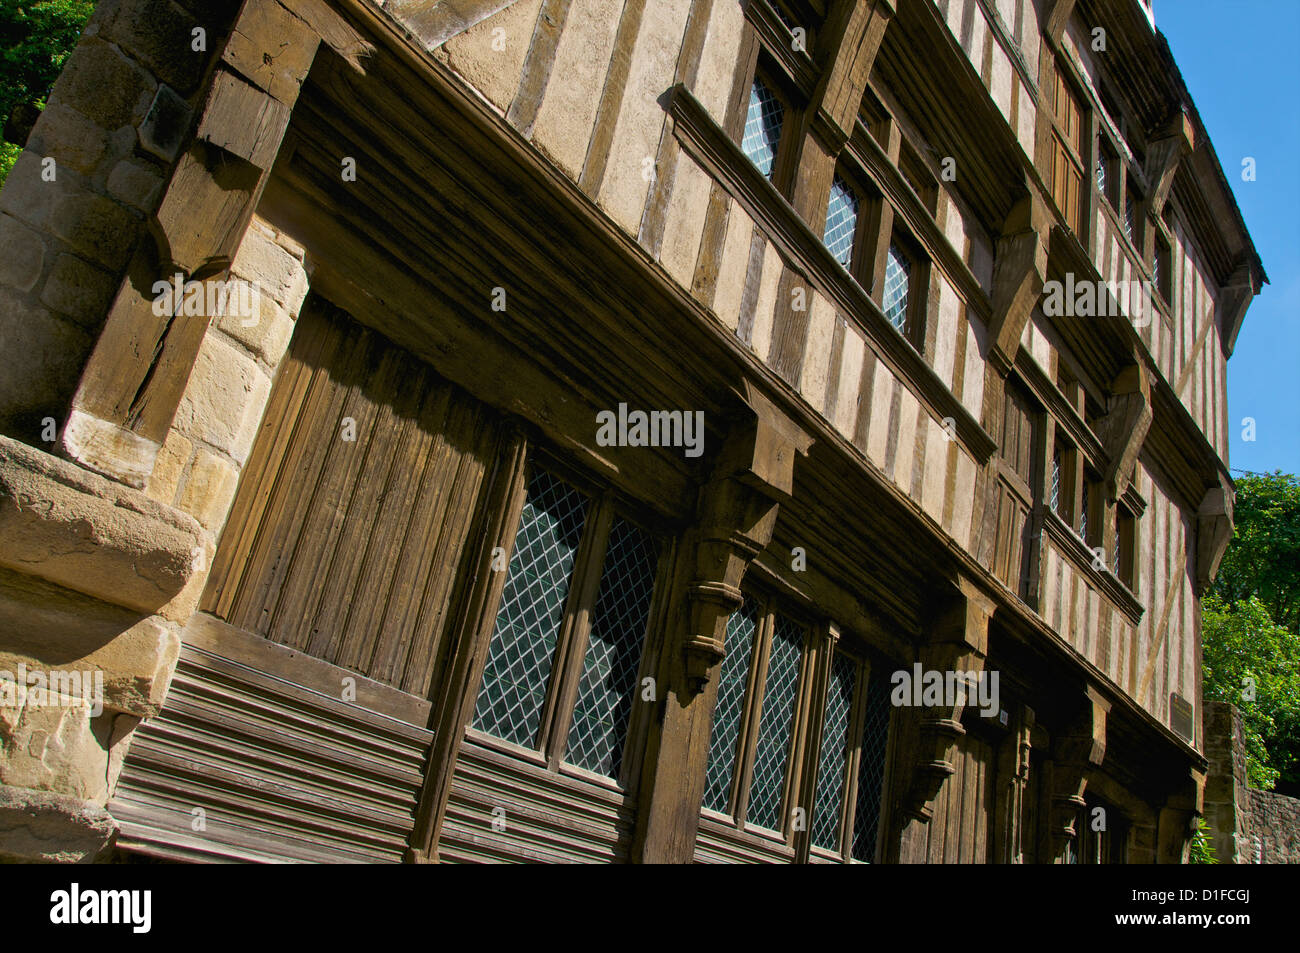 Facade detail of the Governor's house, a 15th century mansion, Old Town, Dinan, Cotes d'Armor, Brittany, - Stock Image